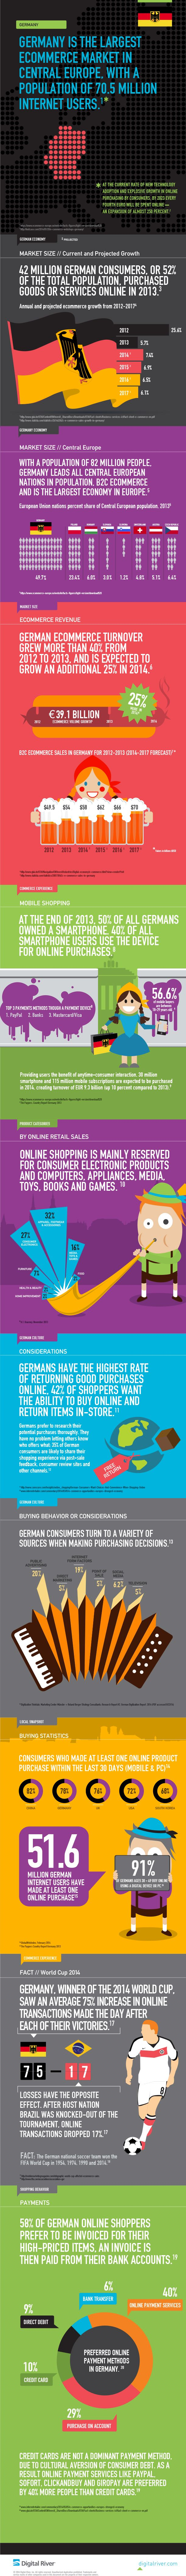 Digital-River-Germany-Infographic